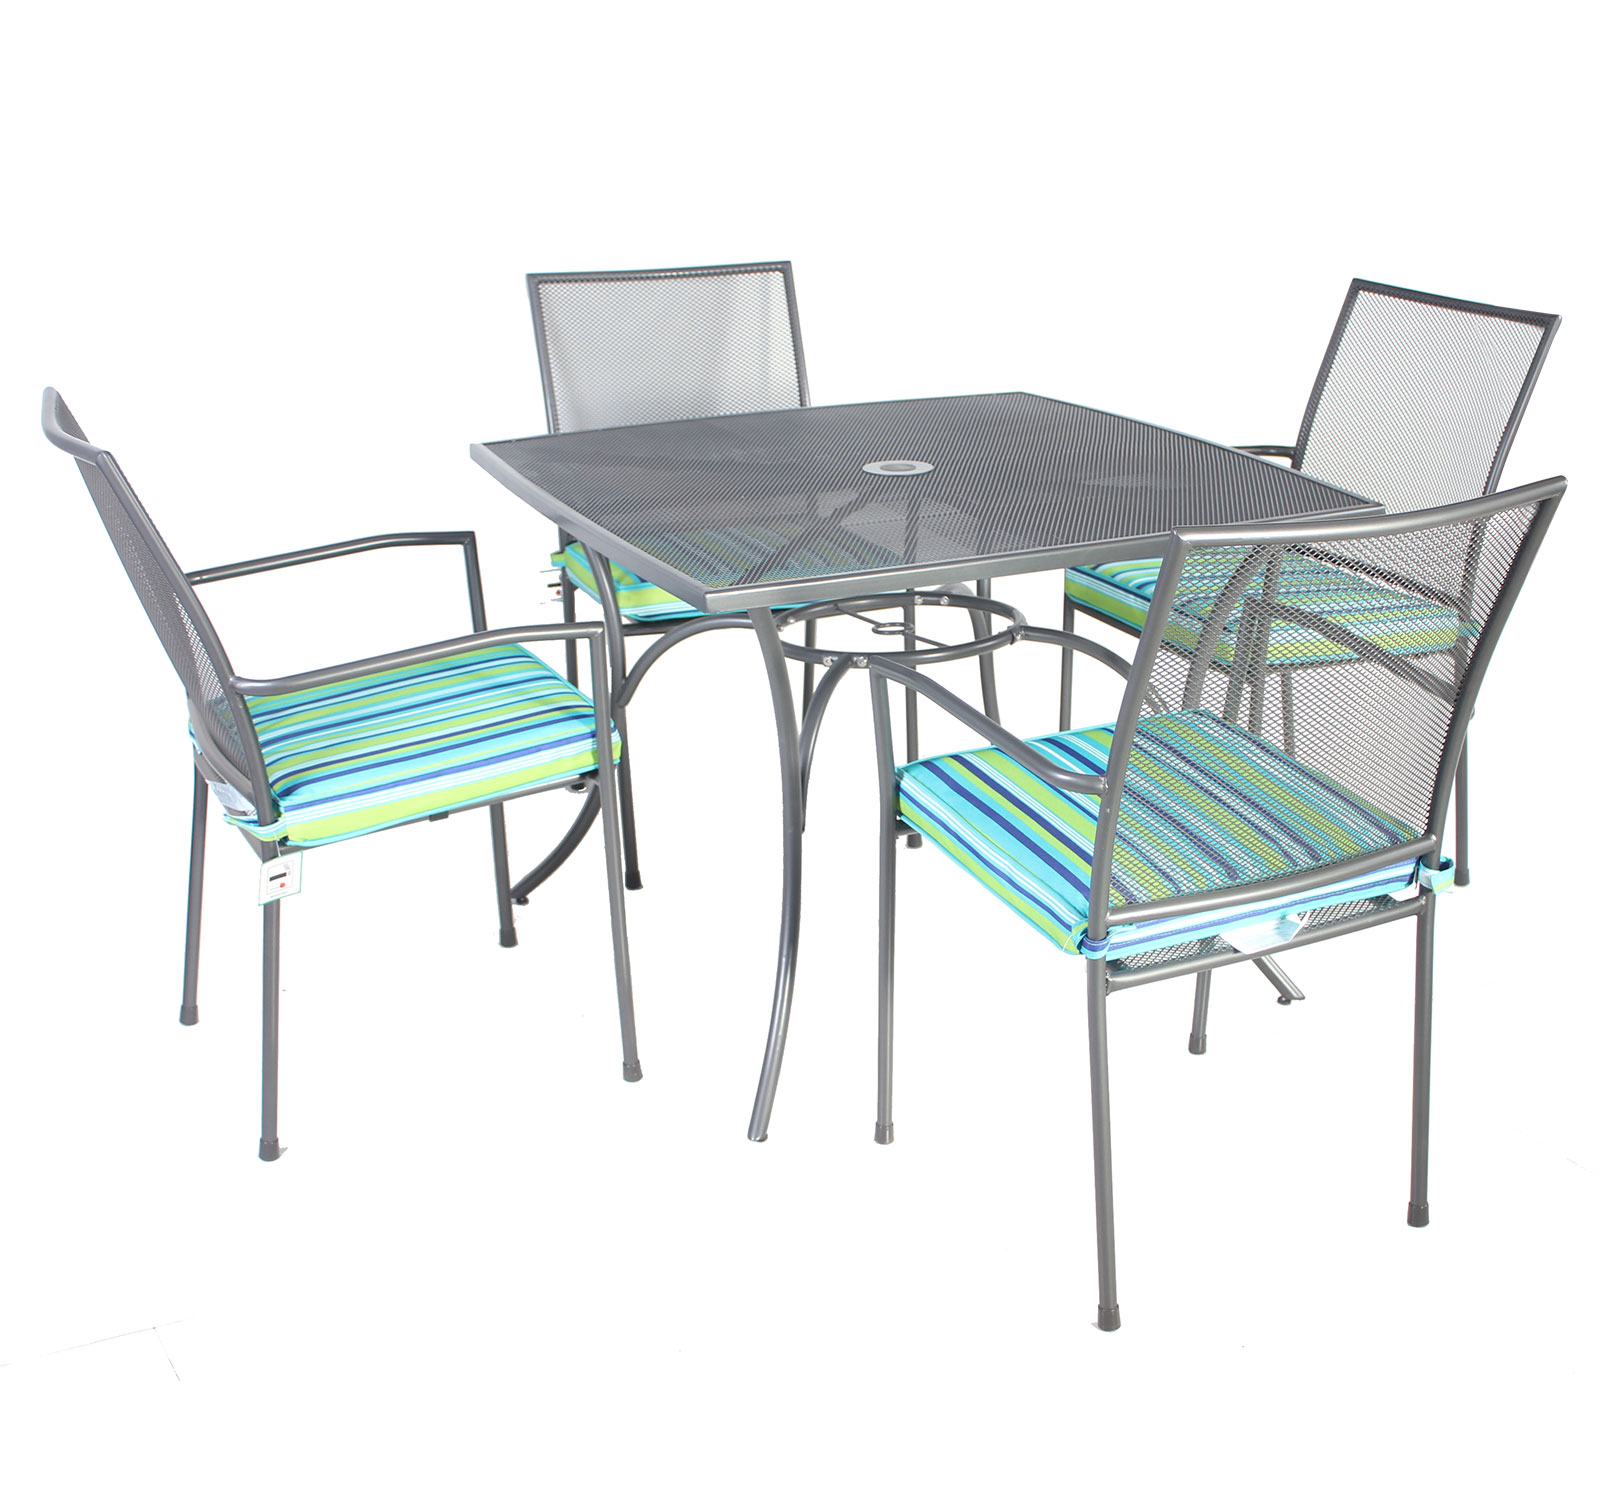 Bentley garden outdoor metal mesh 5 piece table and chairs for Metal garden table and chairs